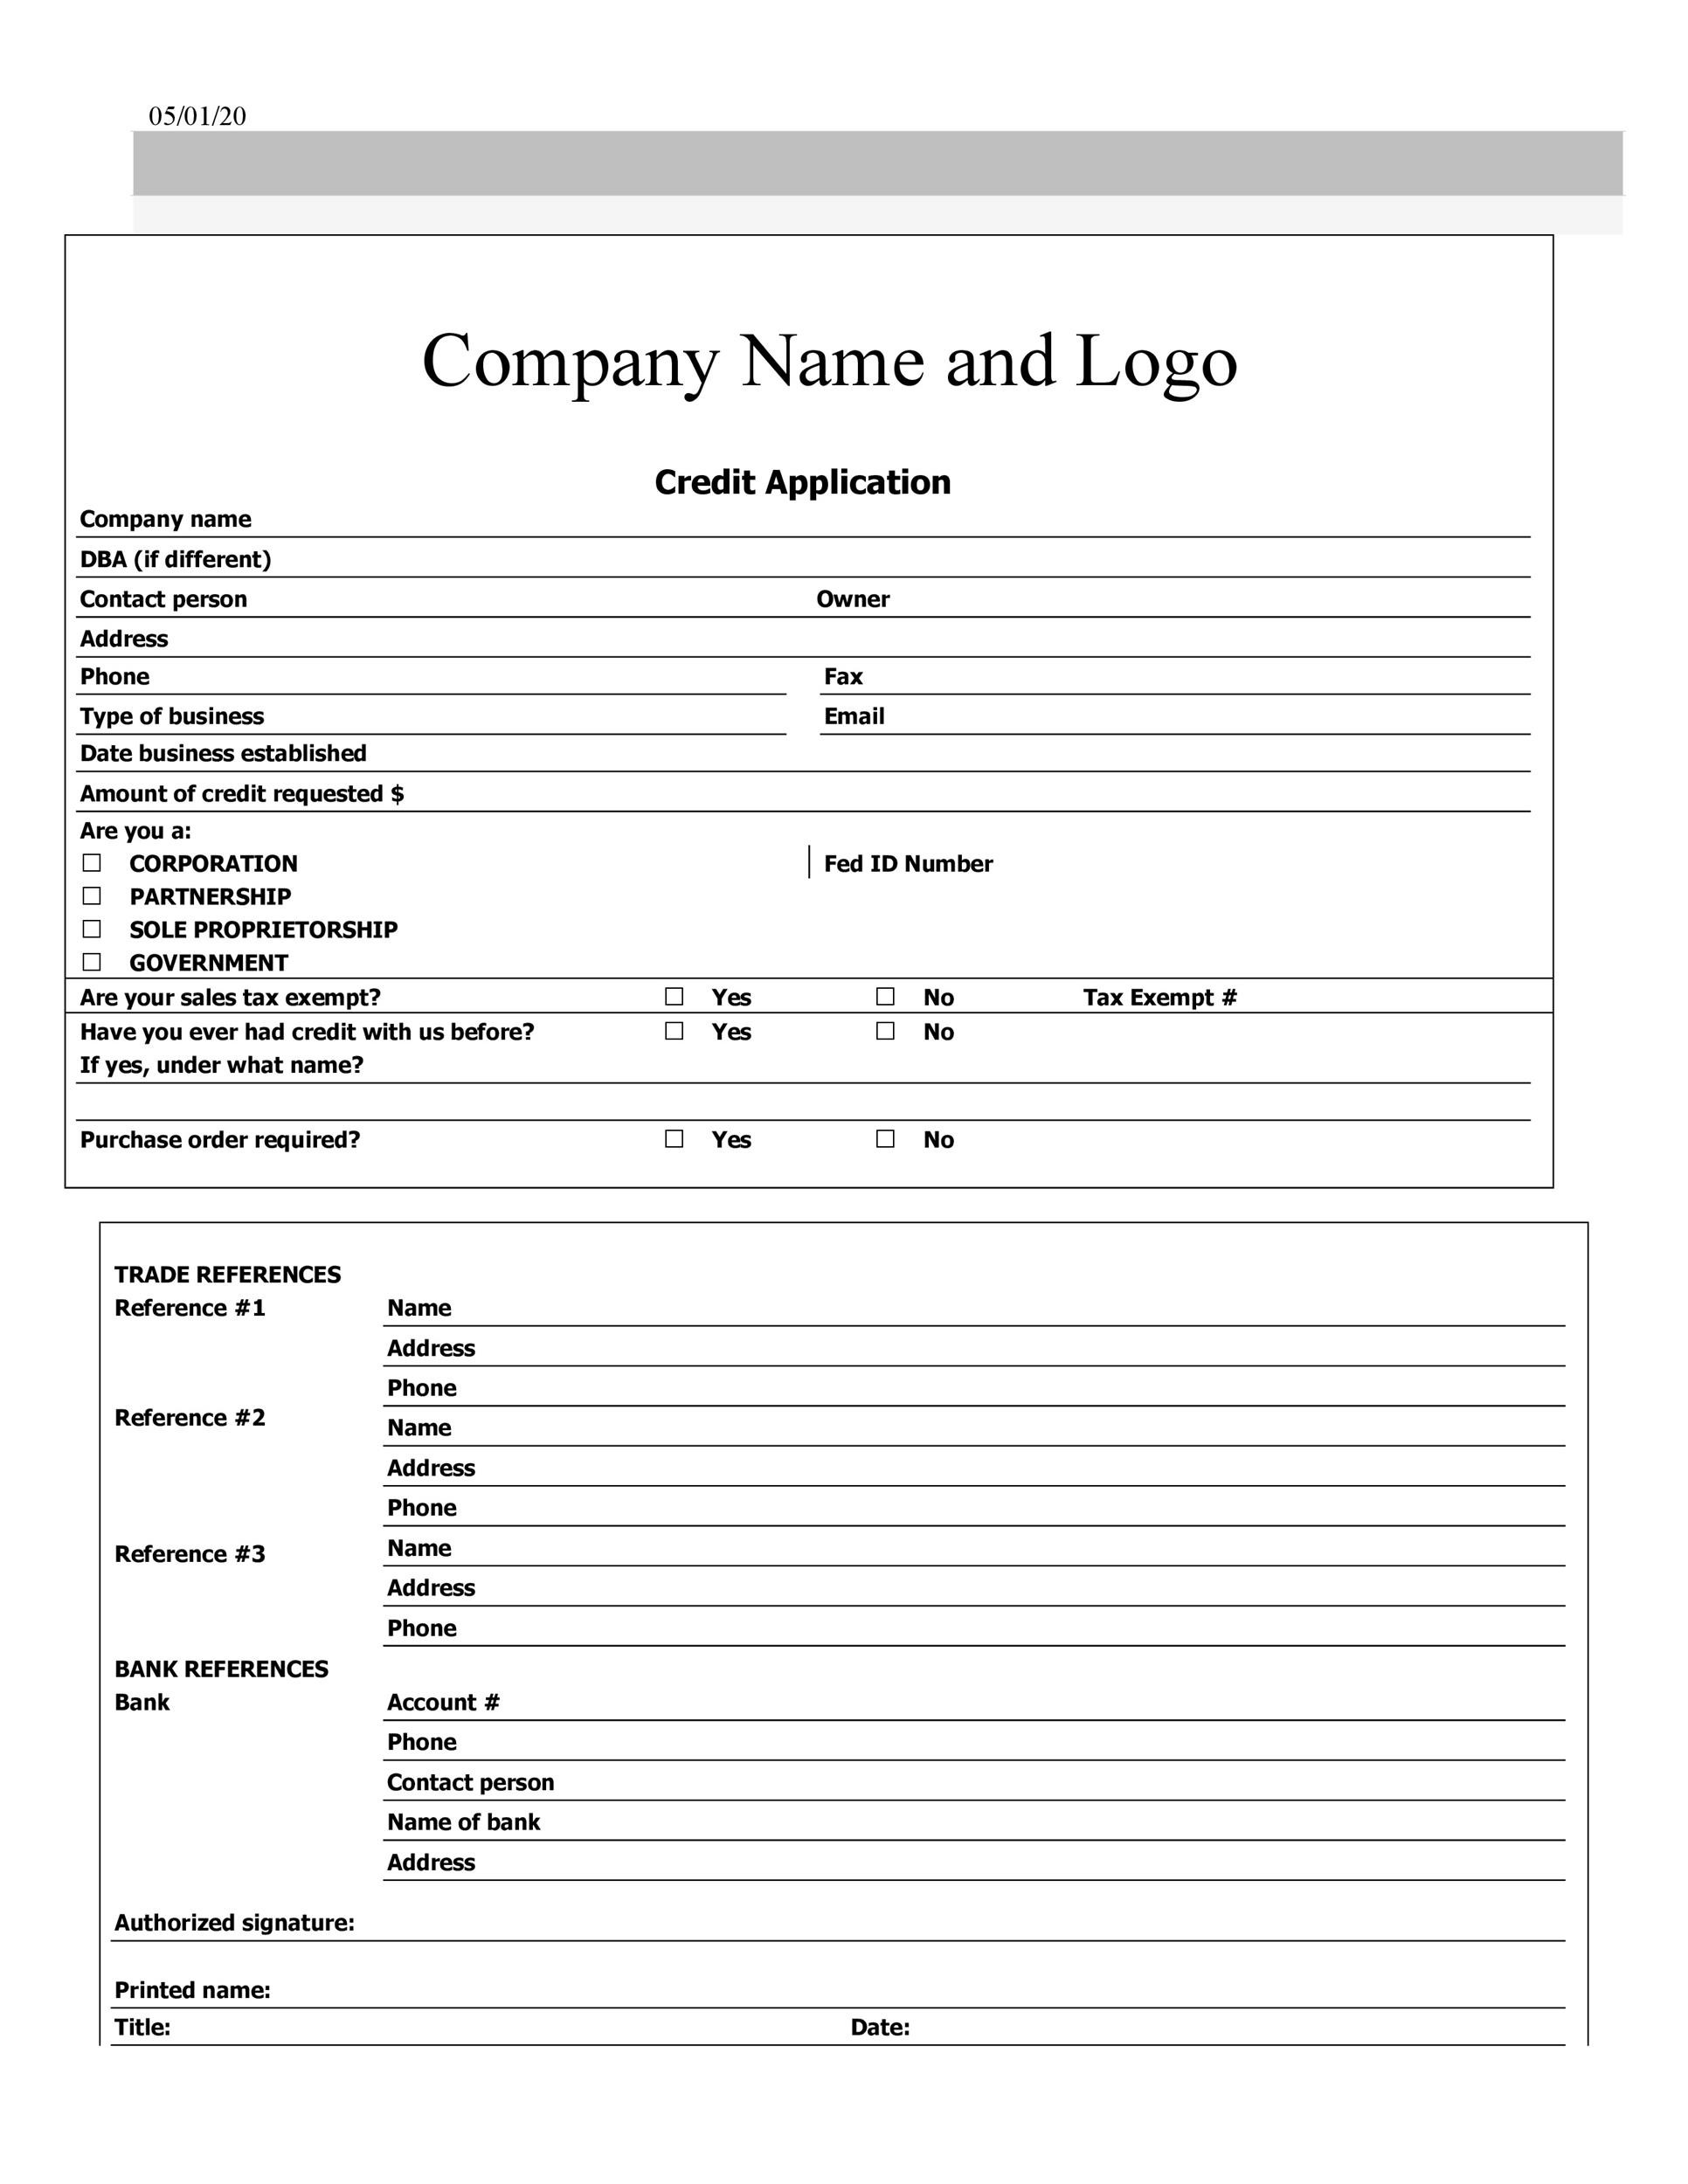 Credit Application Form 34